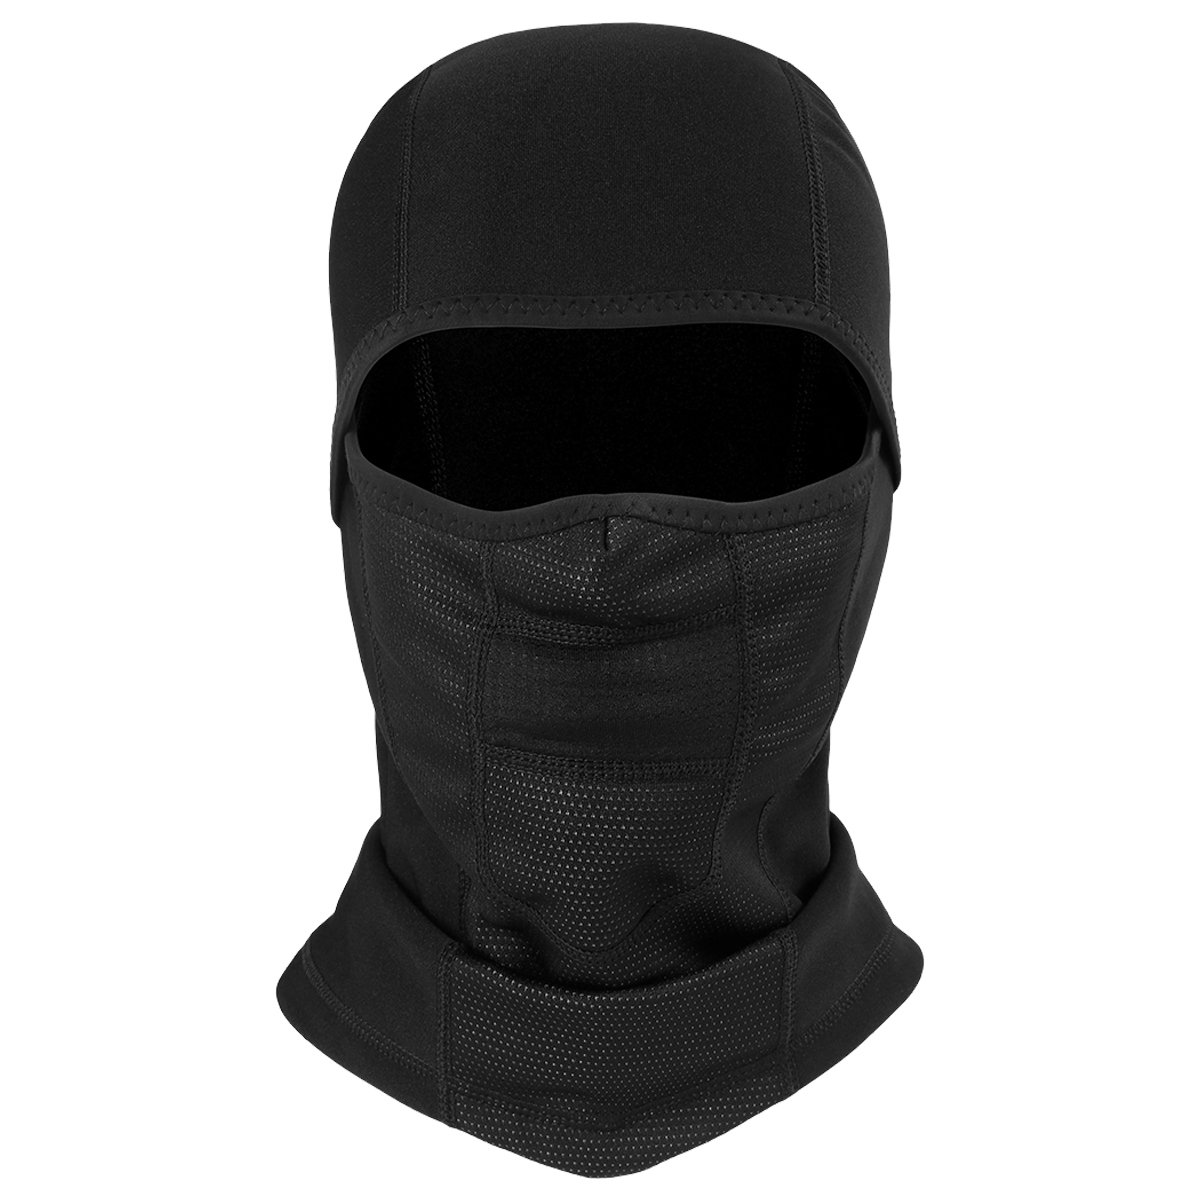 ECYC Outdoor Black Balaclava Mask Winter Waterproof Fleece Thermal Neck Warmer Full Face Masks Tactical Mask